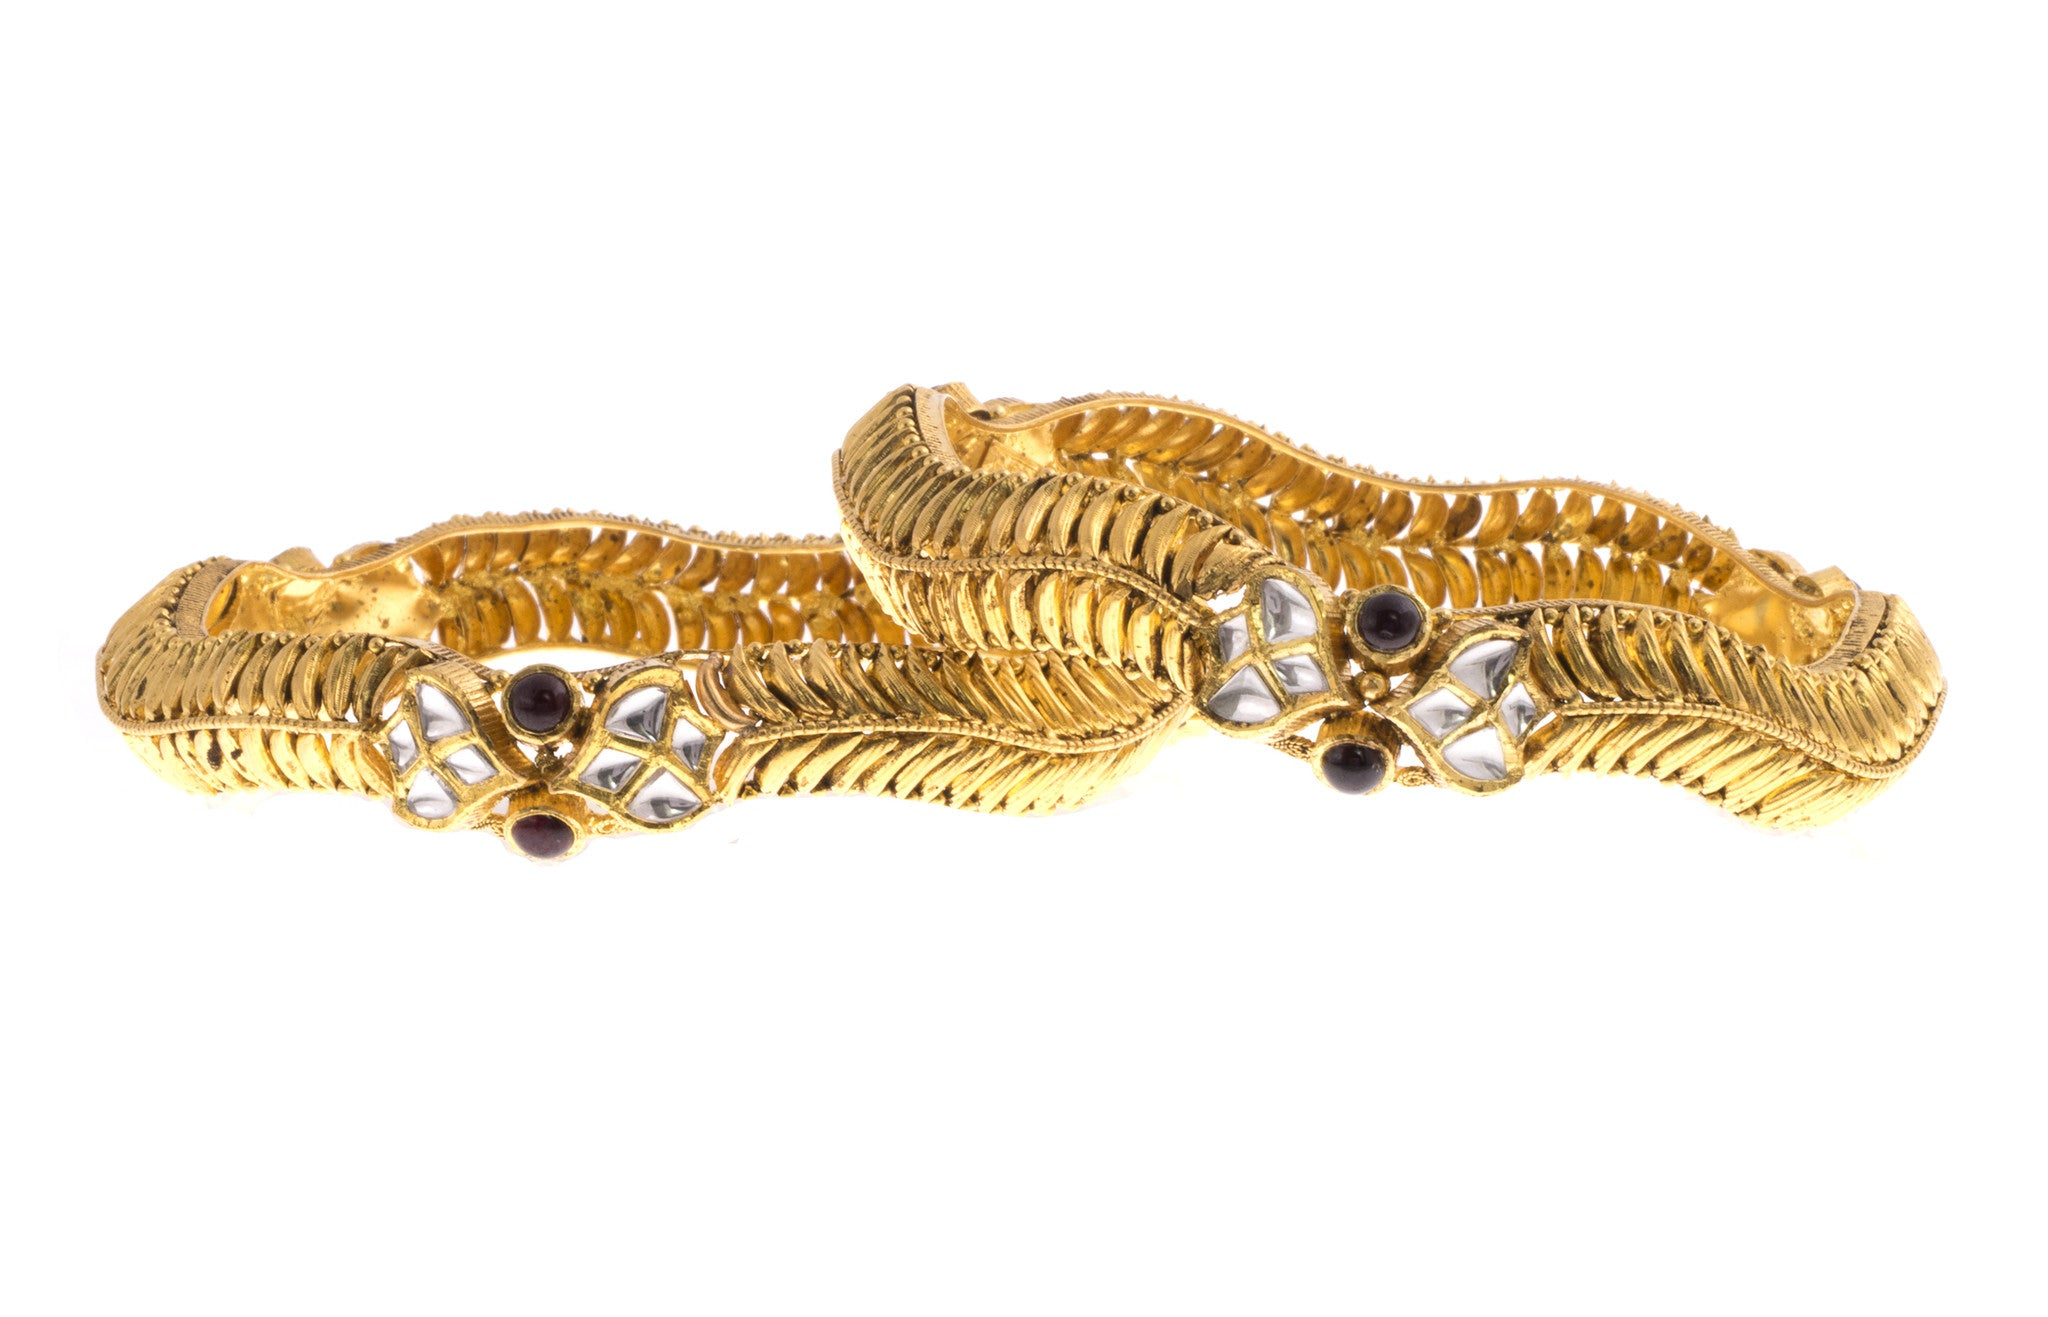 22ct Yellow Gold Antique Look Bangle with Synthetic Stones (G1753), Minar Jewellers - 4